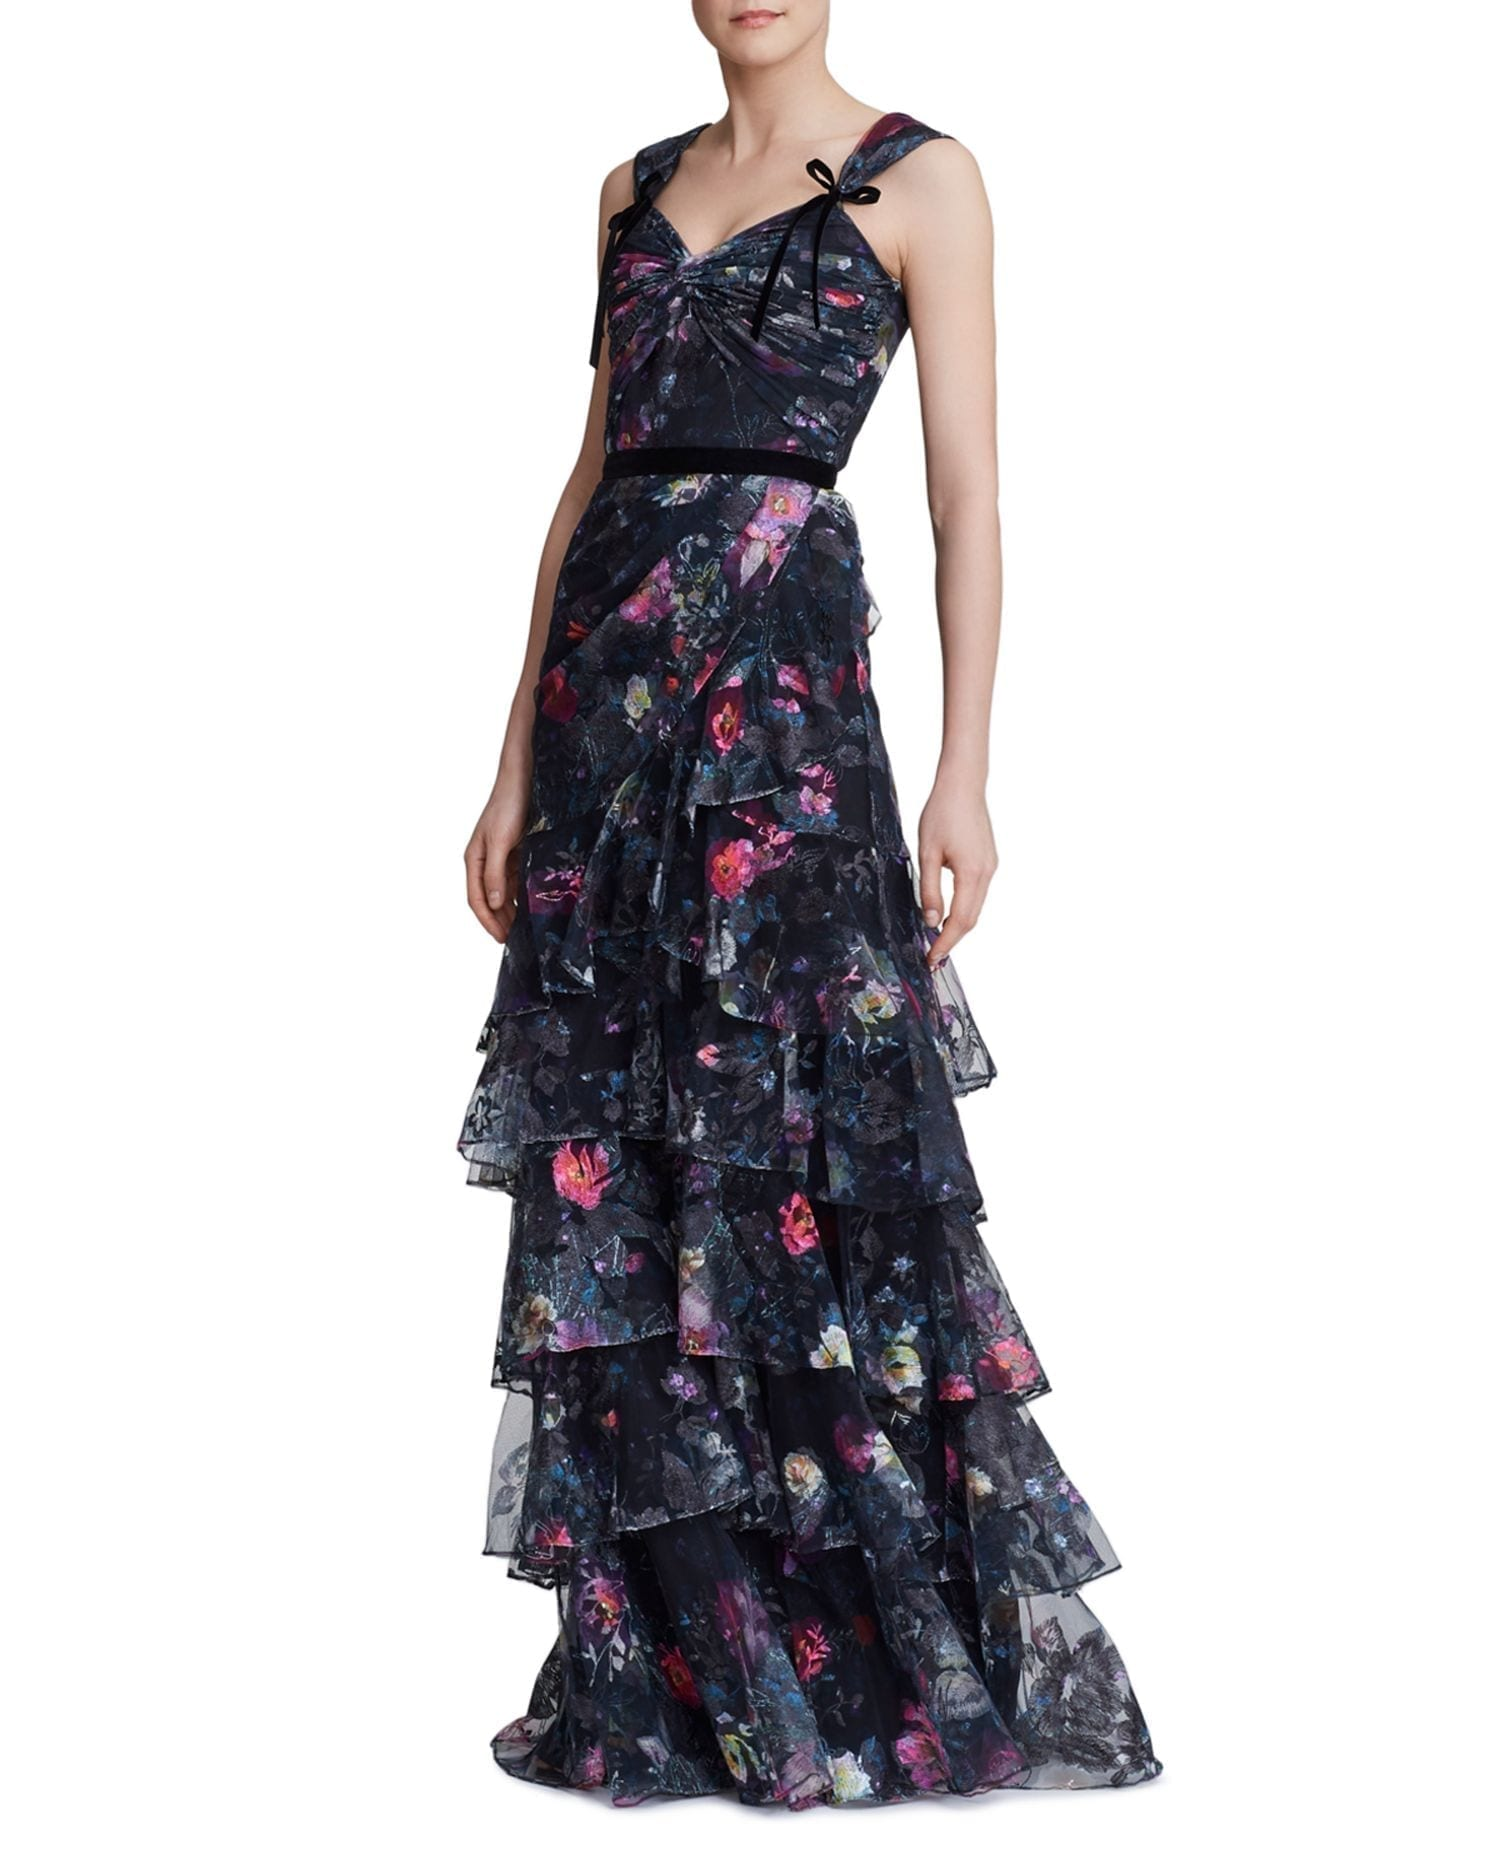 MARCHESA NOTTE Tiered Floral-Print Tulle Gown